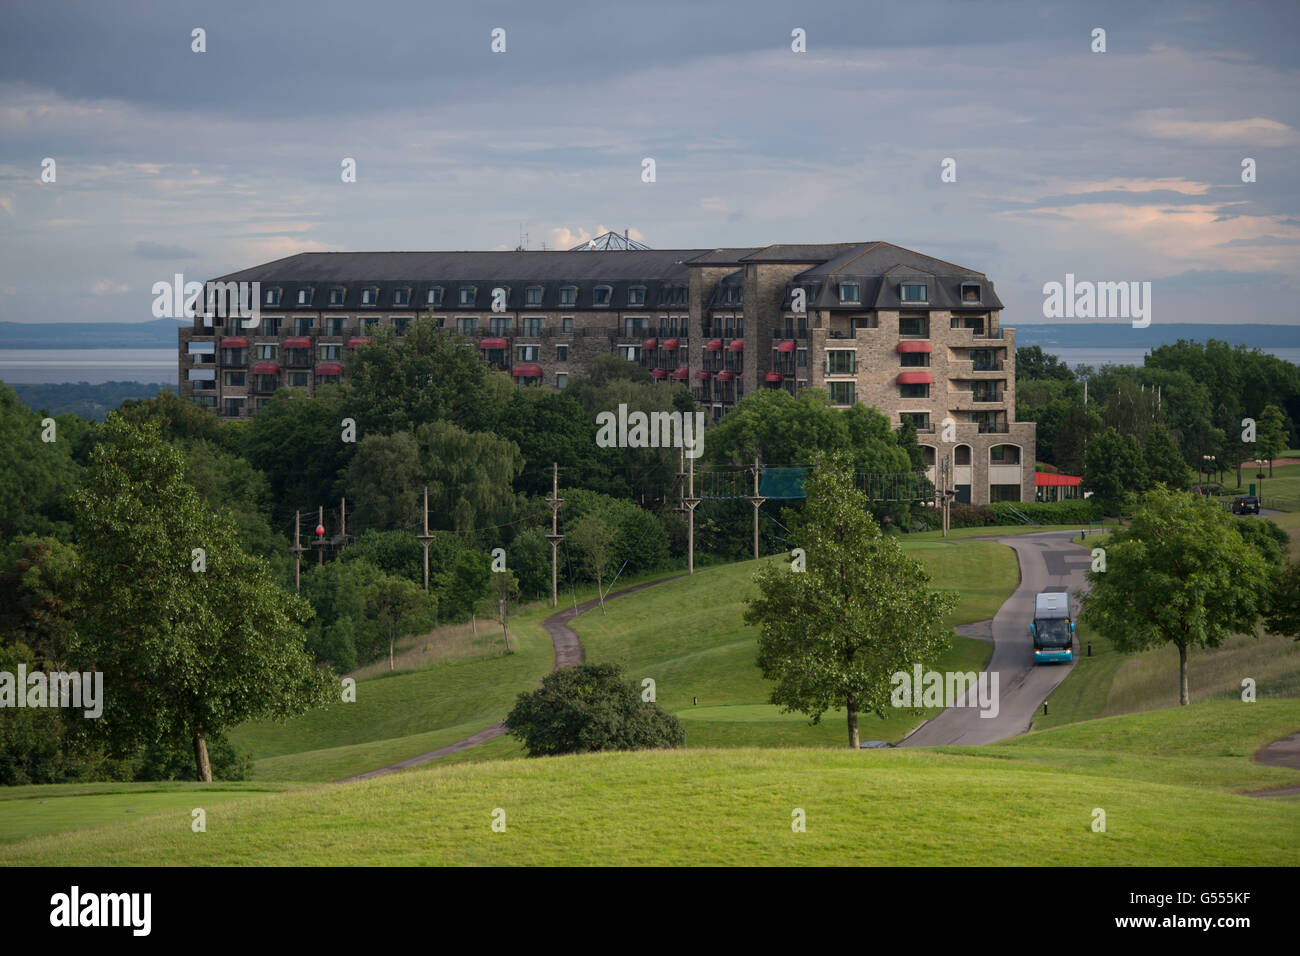 A general view of the Celtic Manor Hotel in Newport, South Wales. - Stock Image